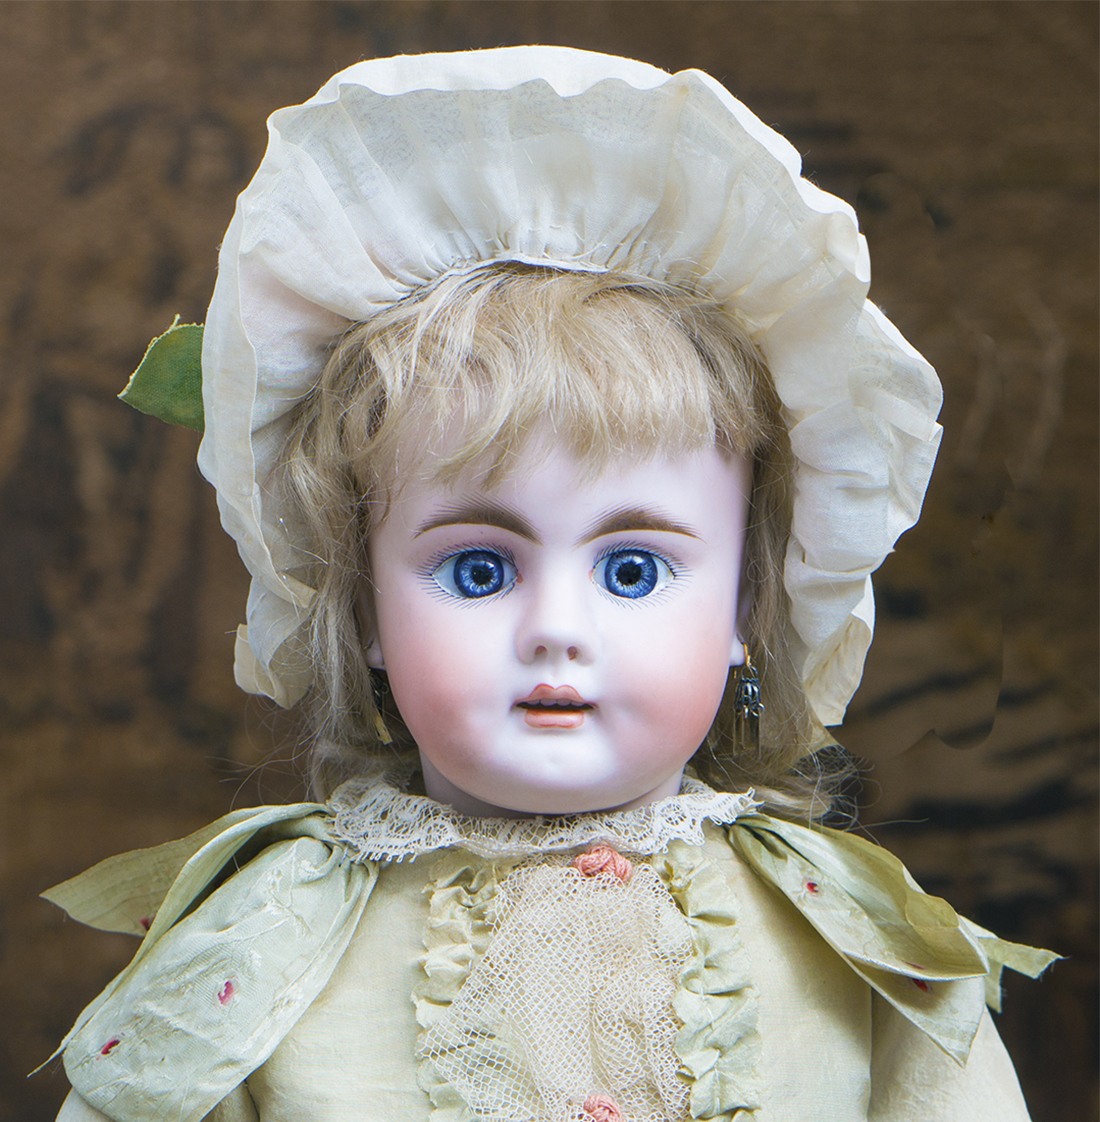 Doll by Bahr& Proschild,c. 1885